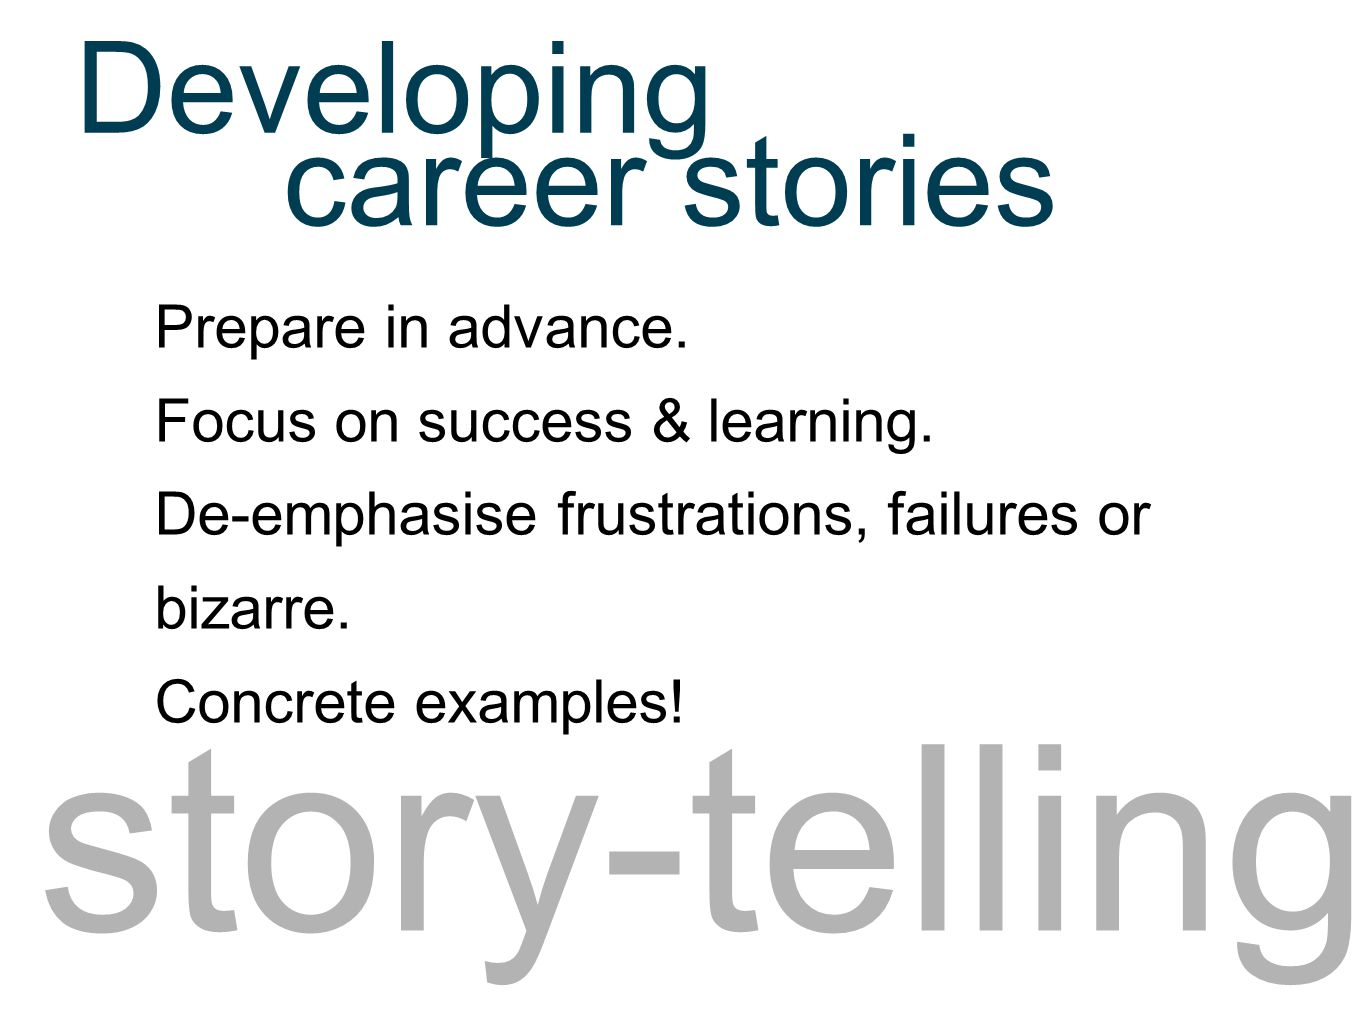 story-telling Prepare in advance. Focus on success & learning.